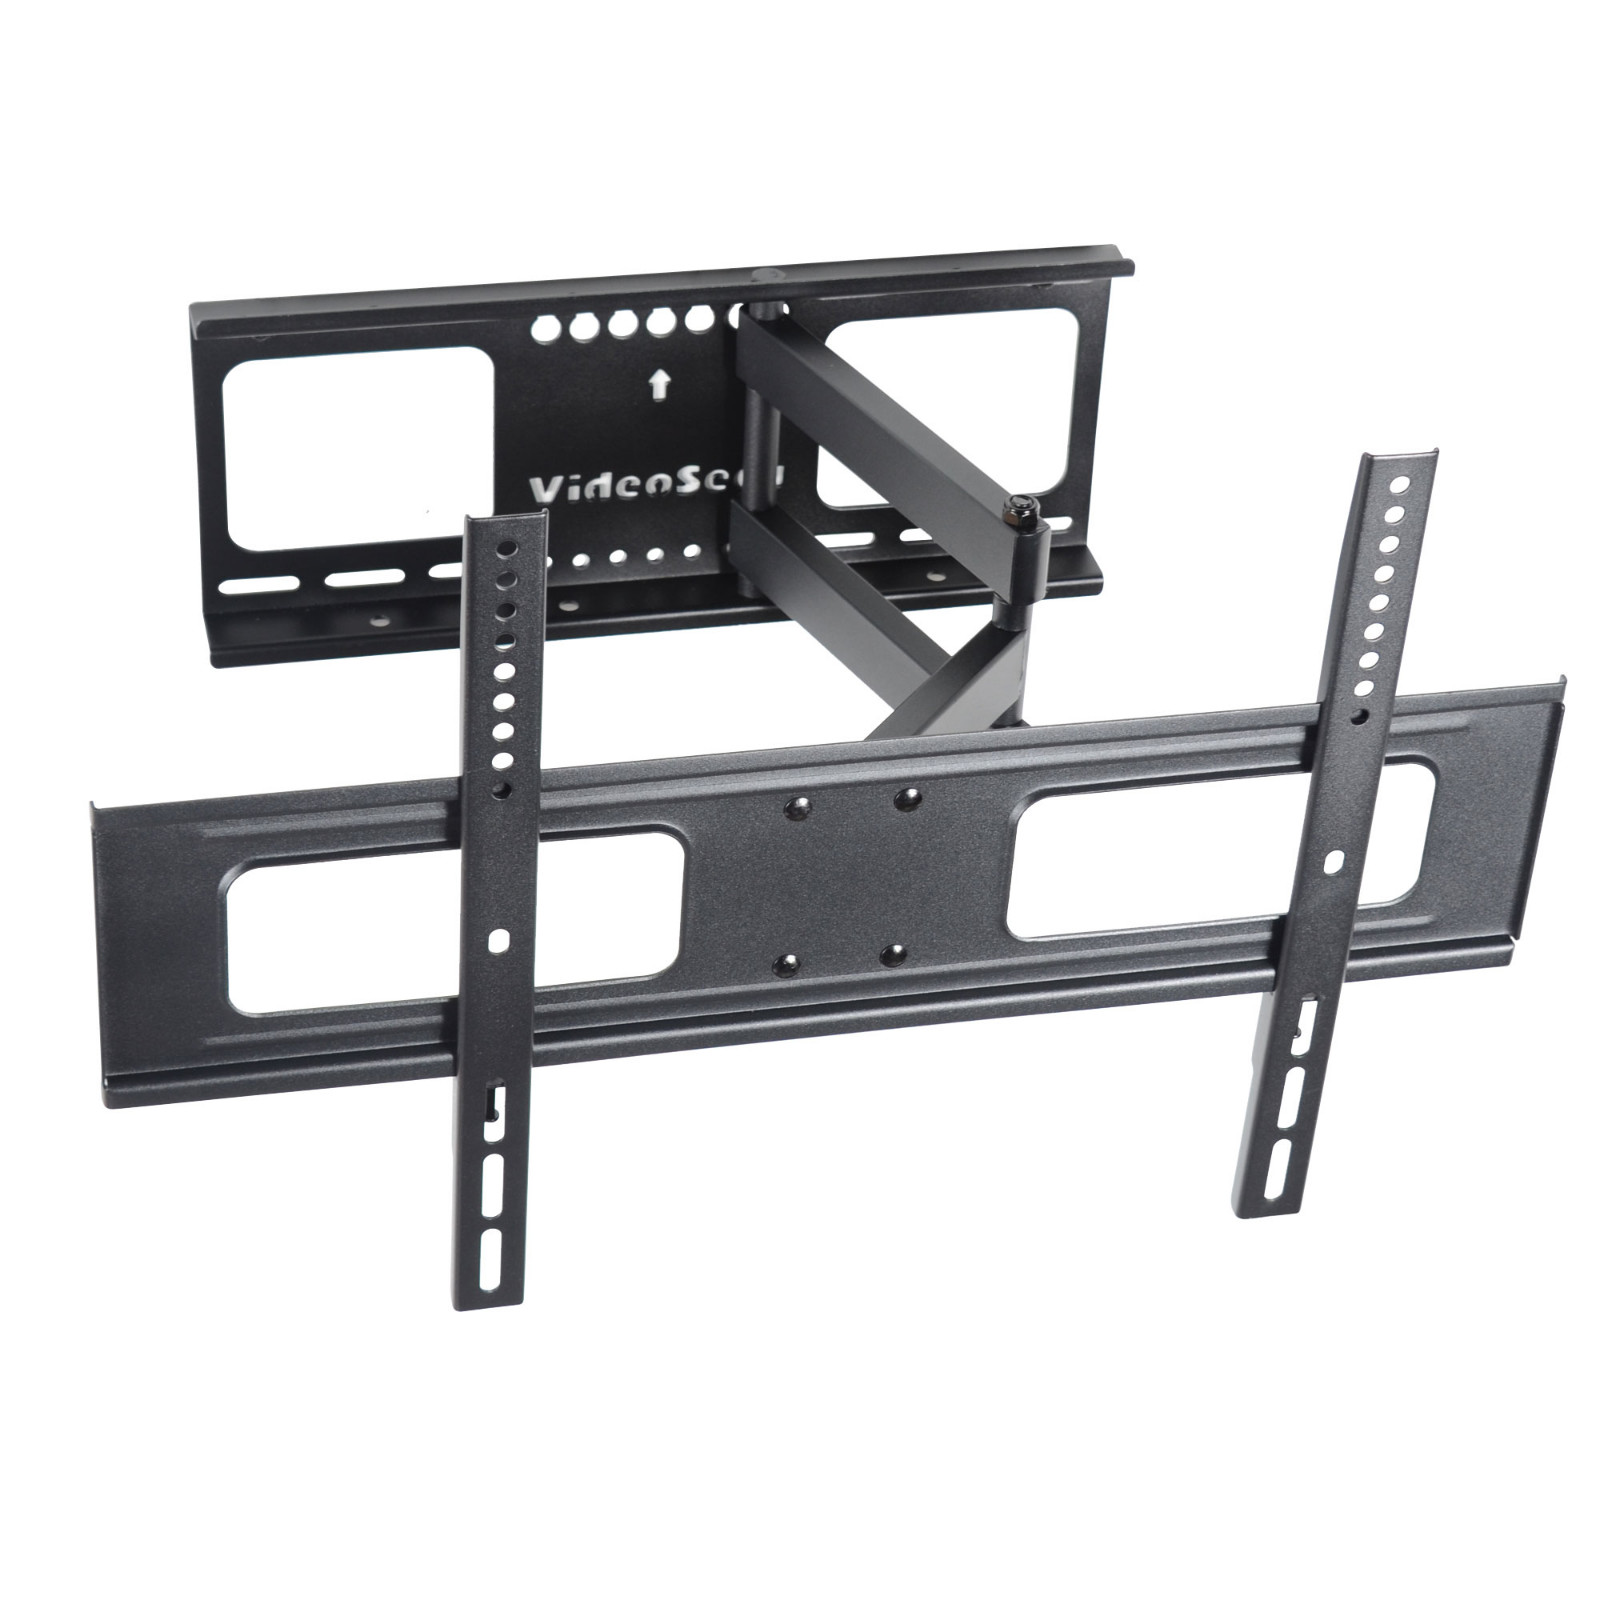 """VideoSecu Articulating TV Wall Mount for Samsung 32 40 46 48 50 55 60"""" LED LCD Plasma... by VideoSecu"""